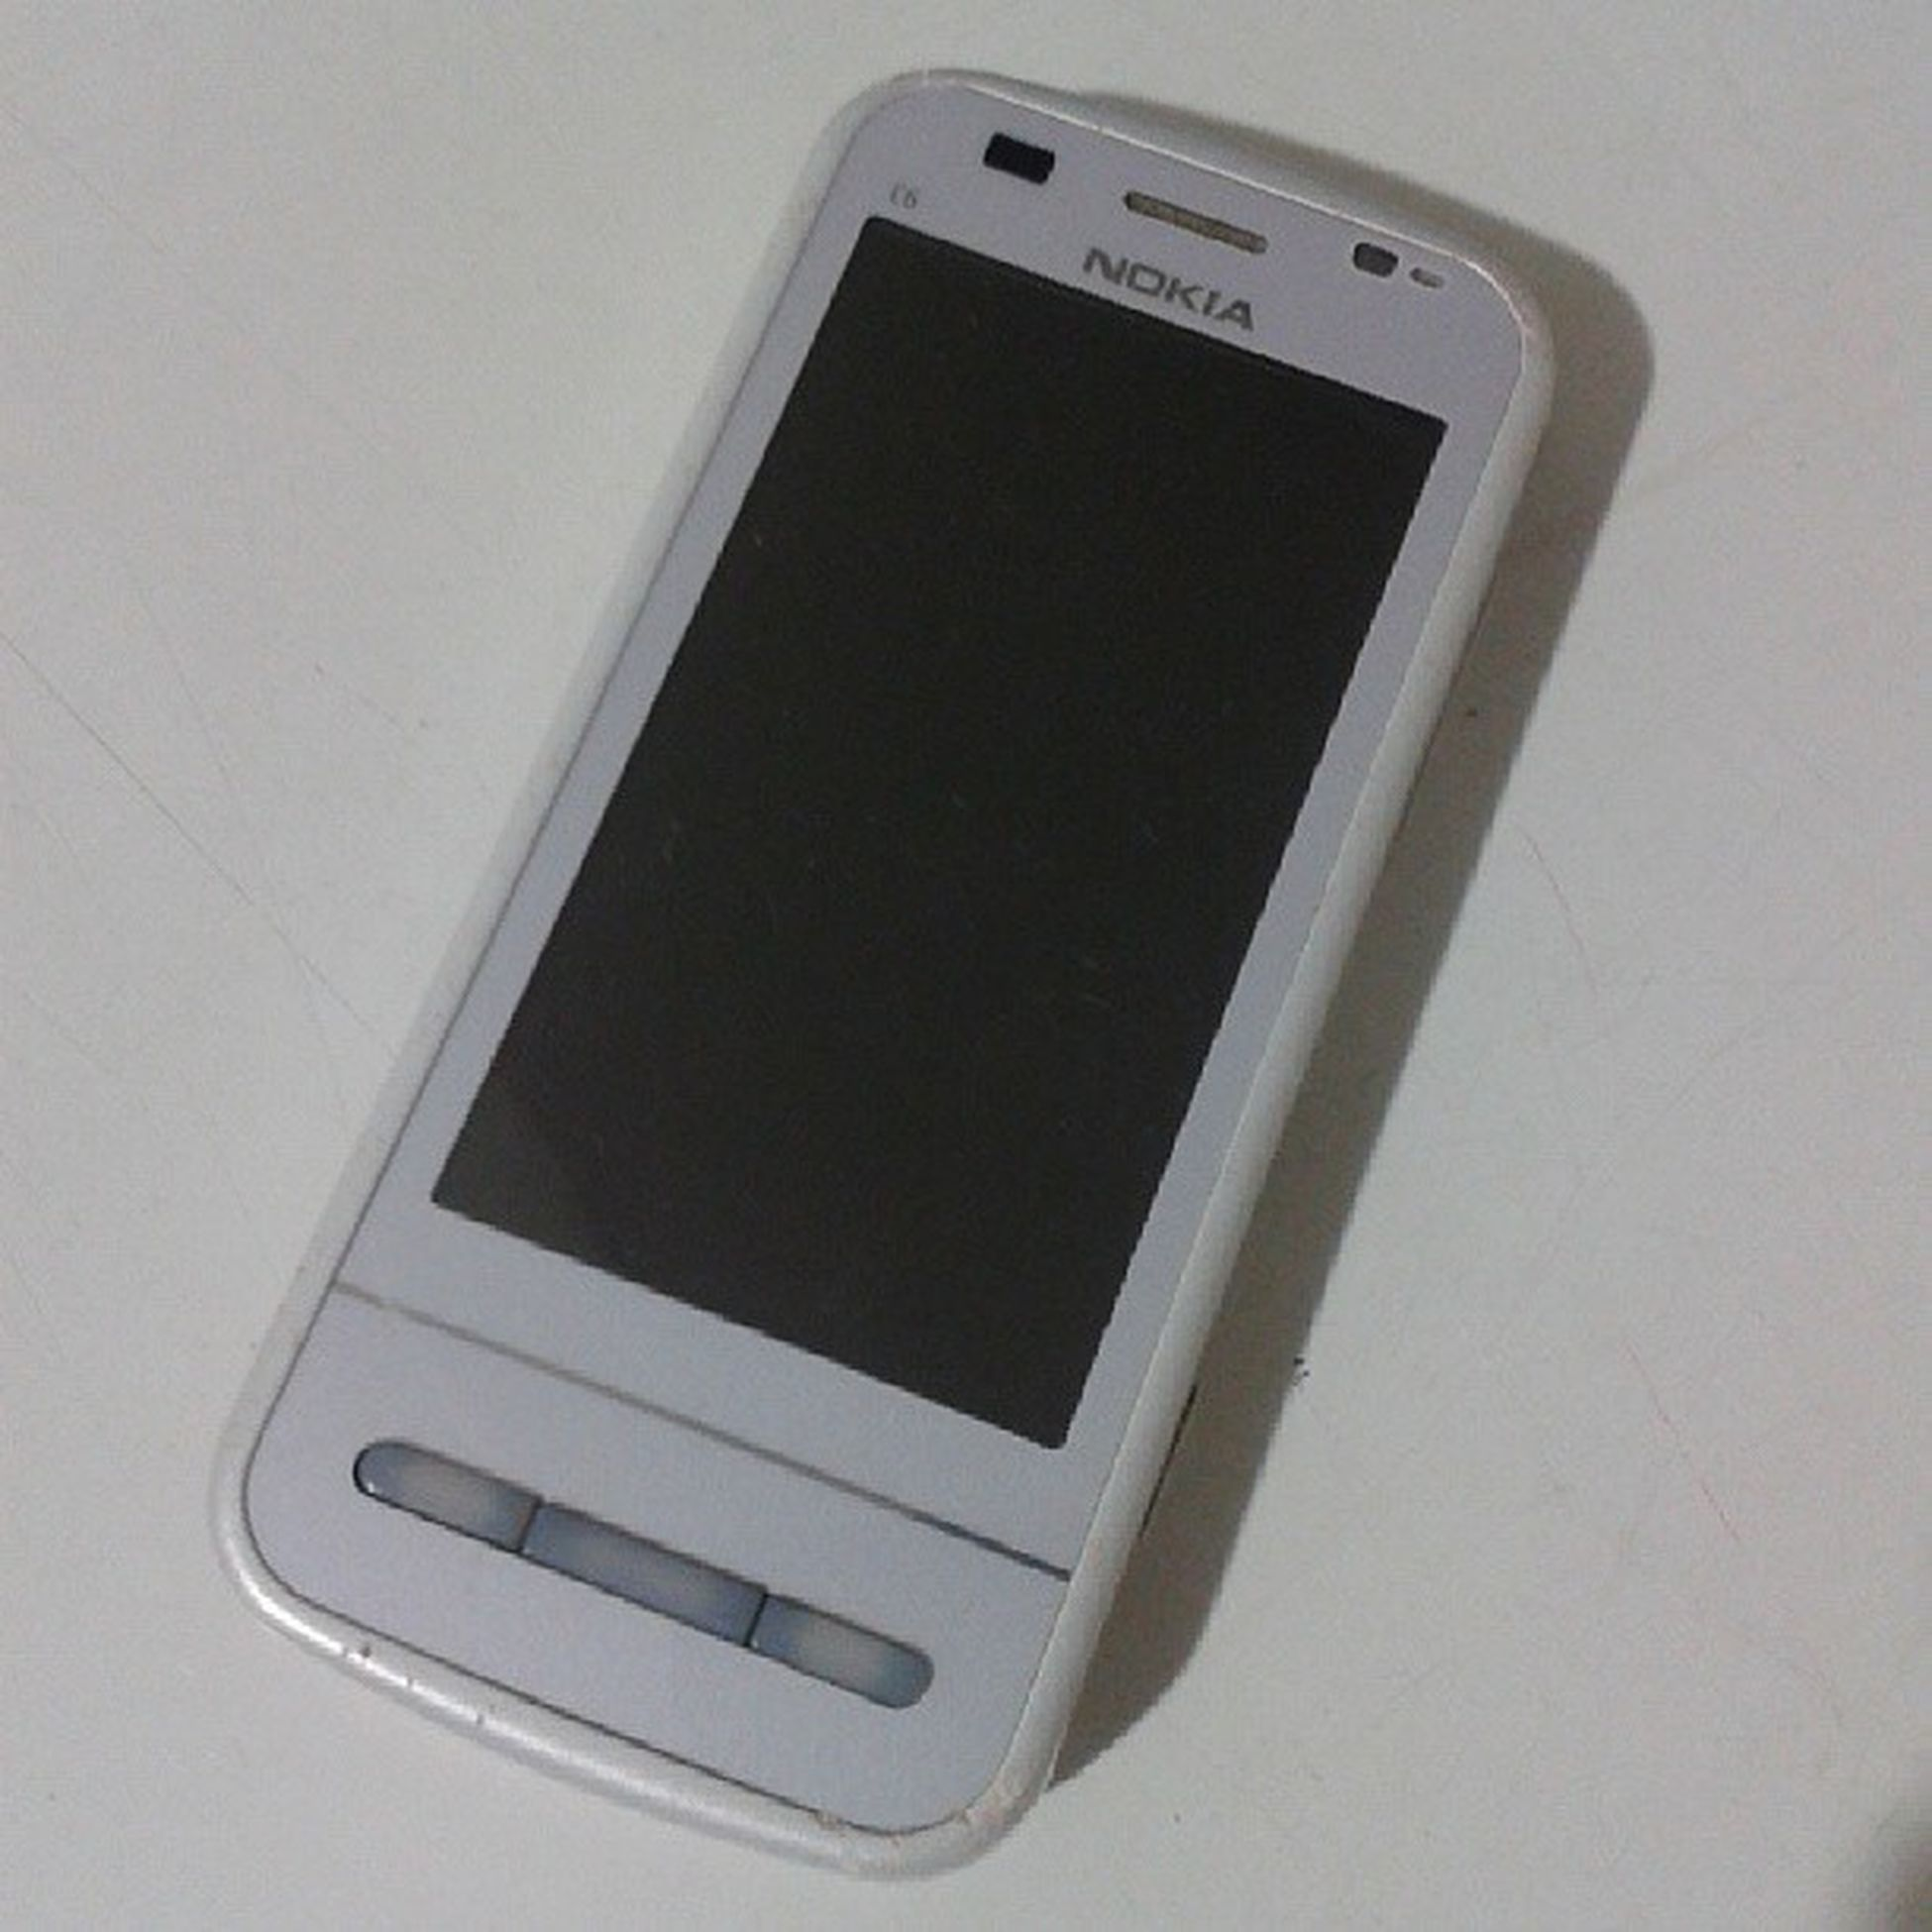 Missthisguy Been Together Through better and worse nokia old phone retired white toughguy 2a2wazalame